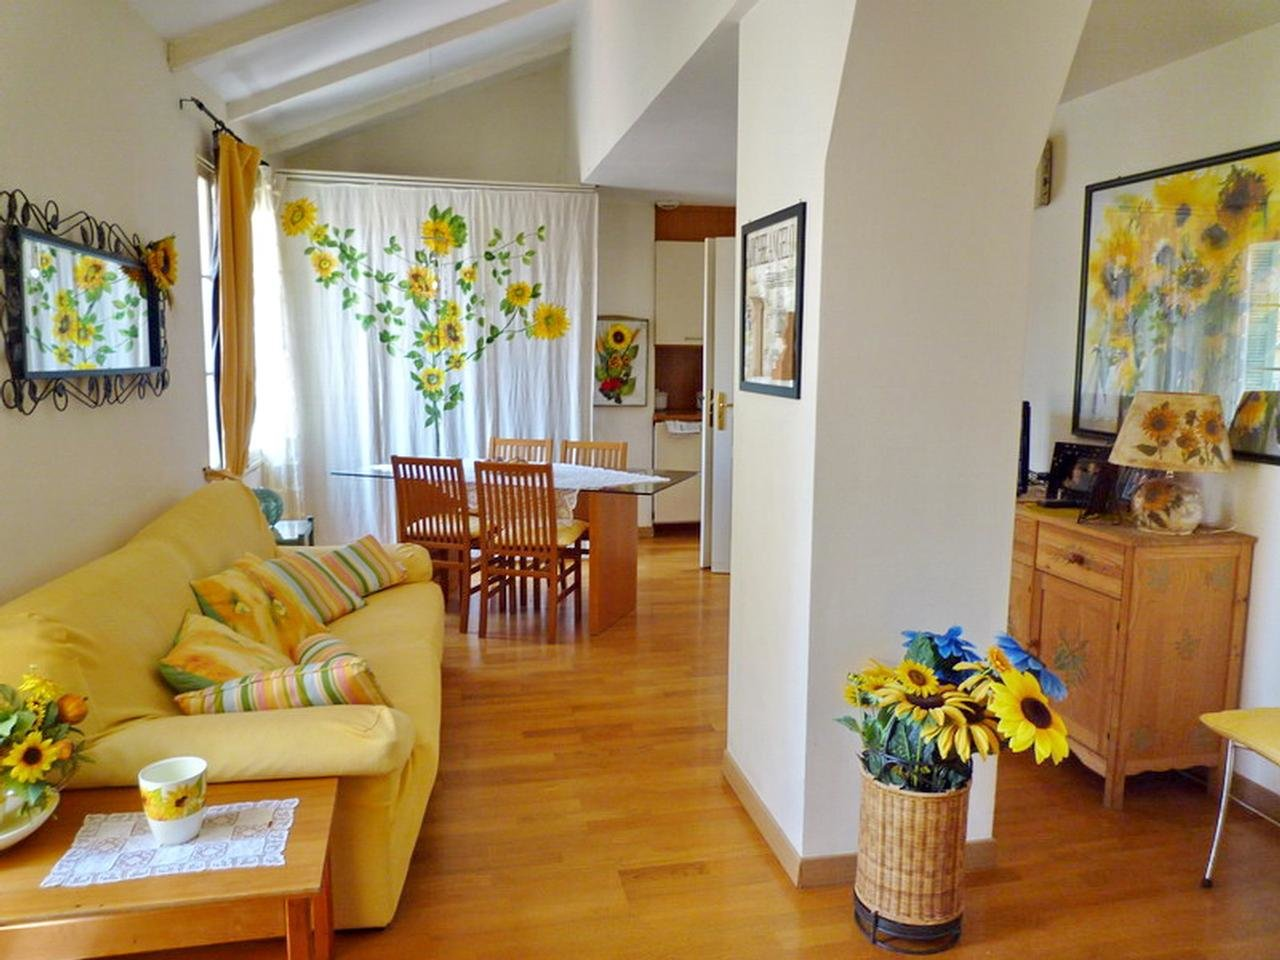 Appartement  3 Rooms 45m2  for sale   320 000 €